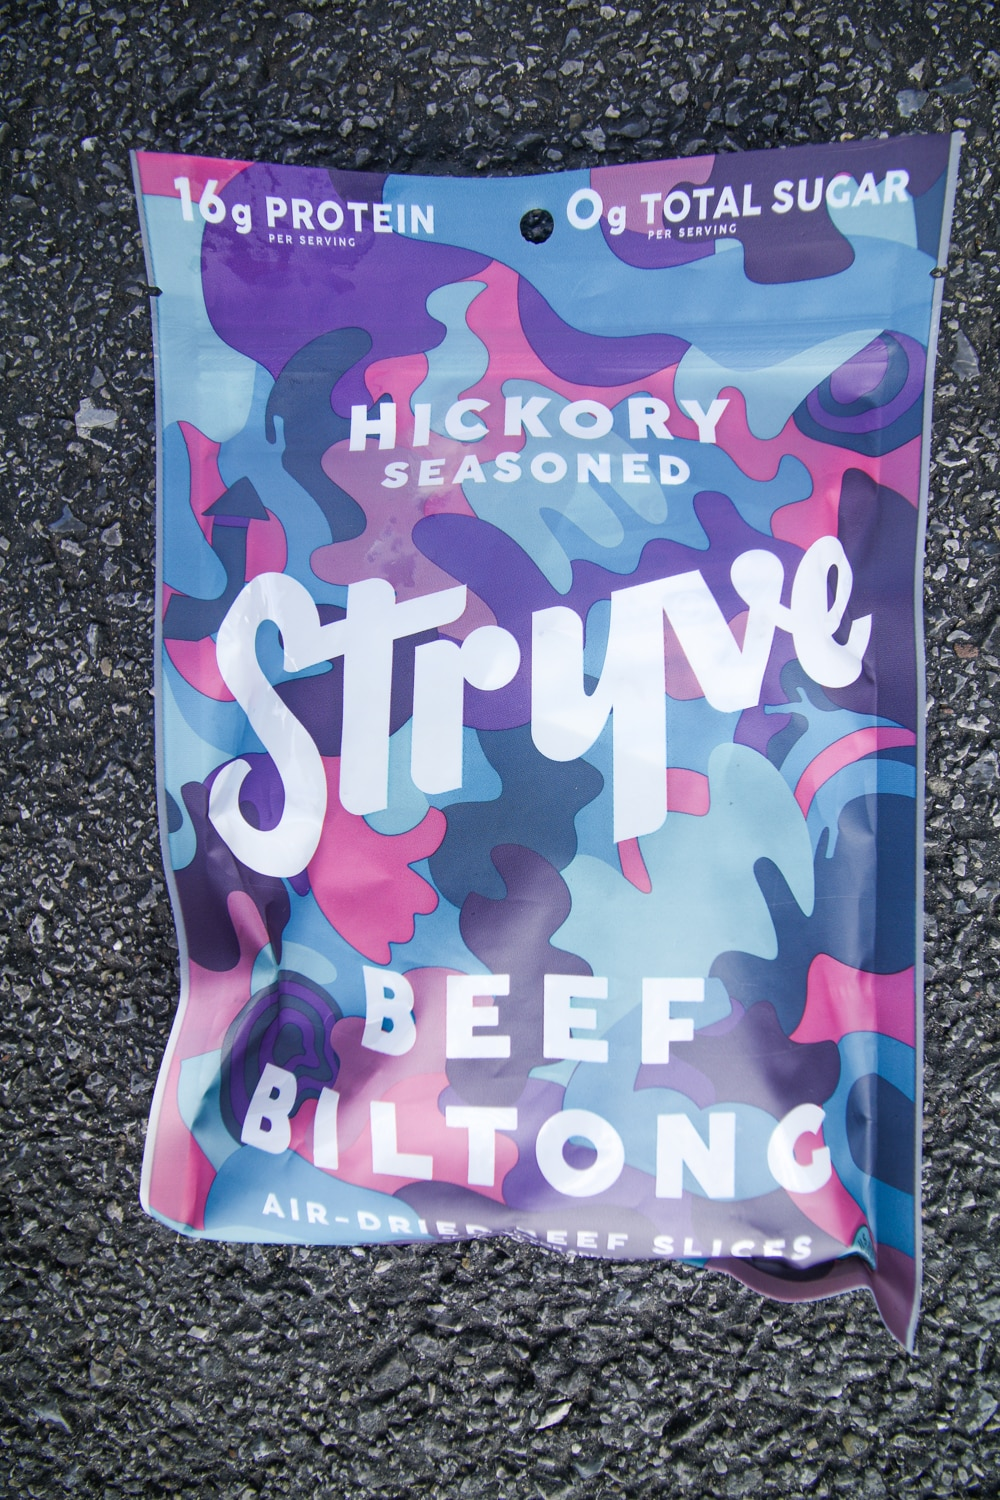 A package of hickory flavored biltong.